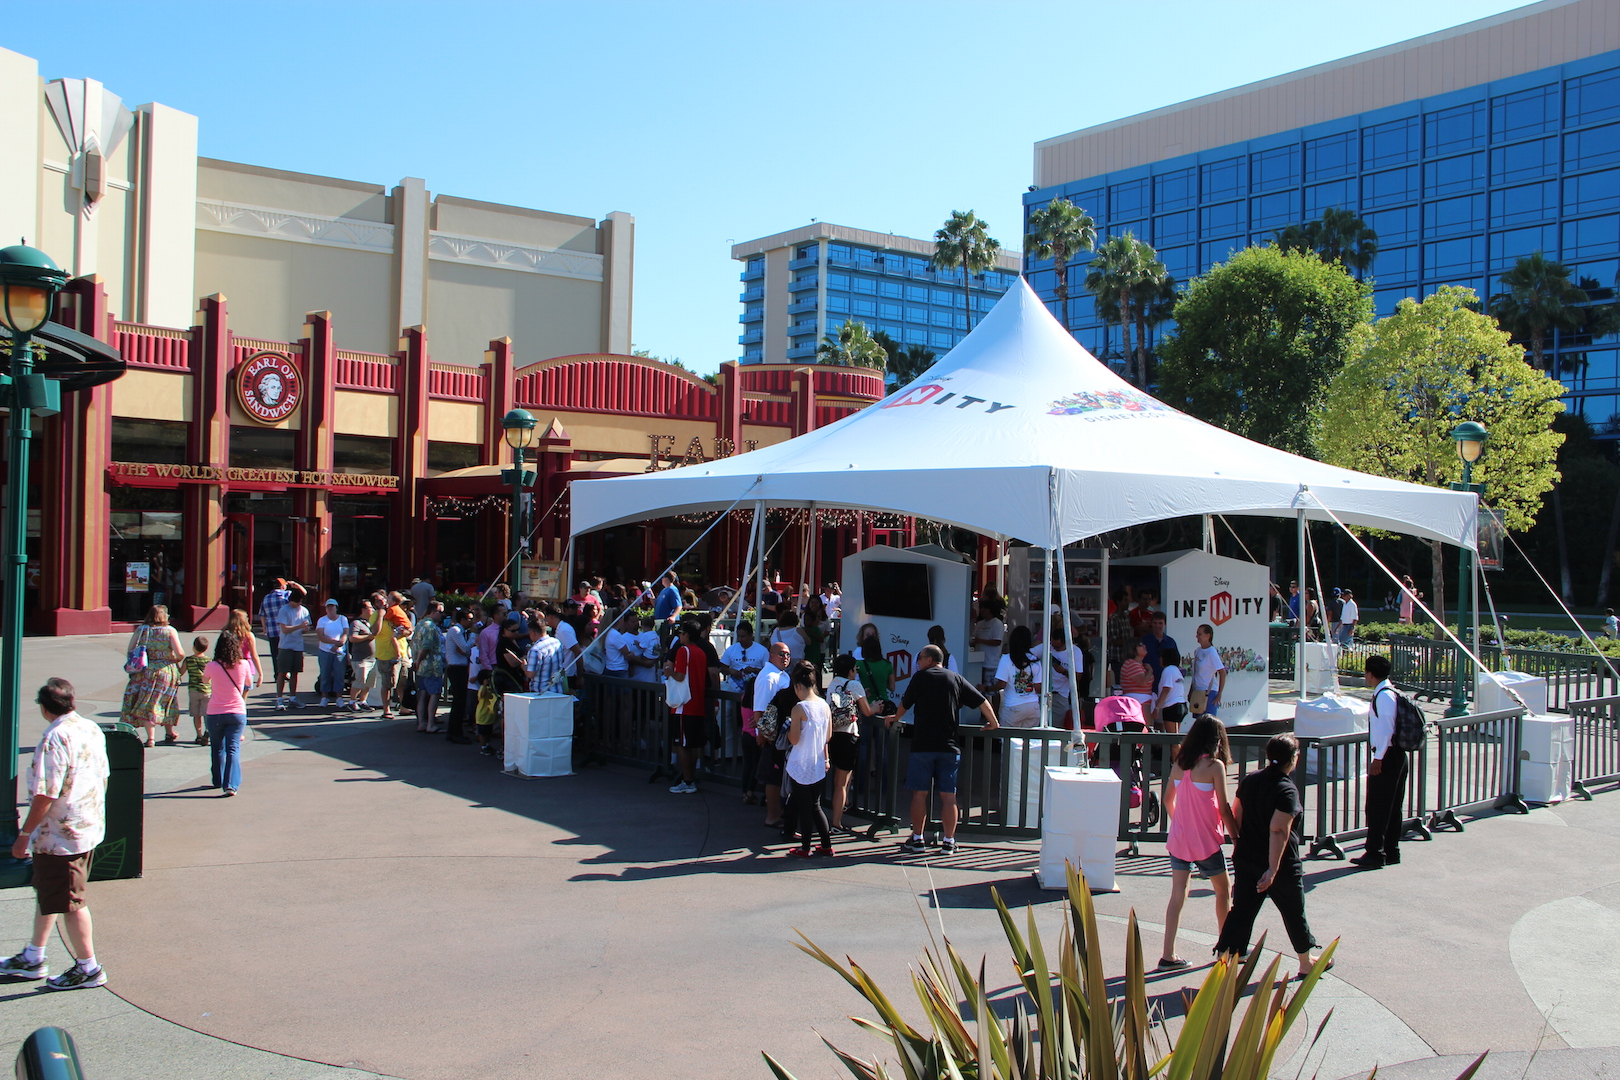 Disney Infinity Product Launch Tour